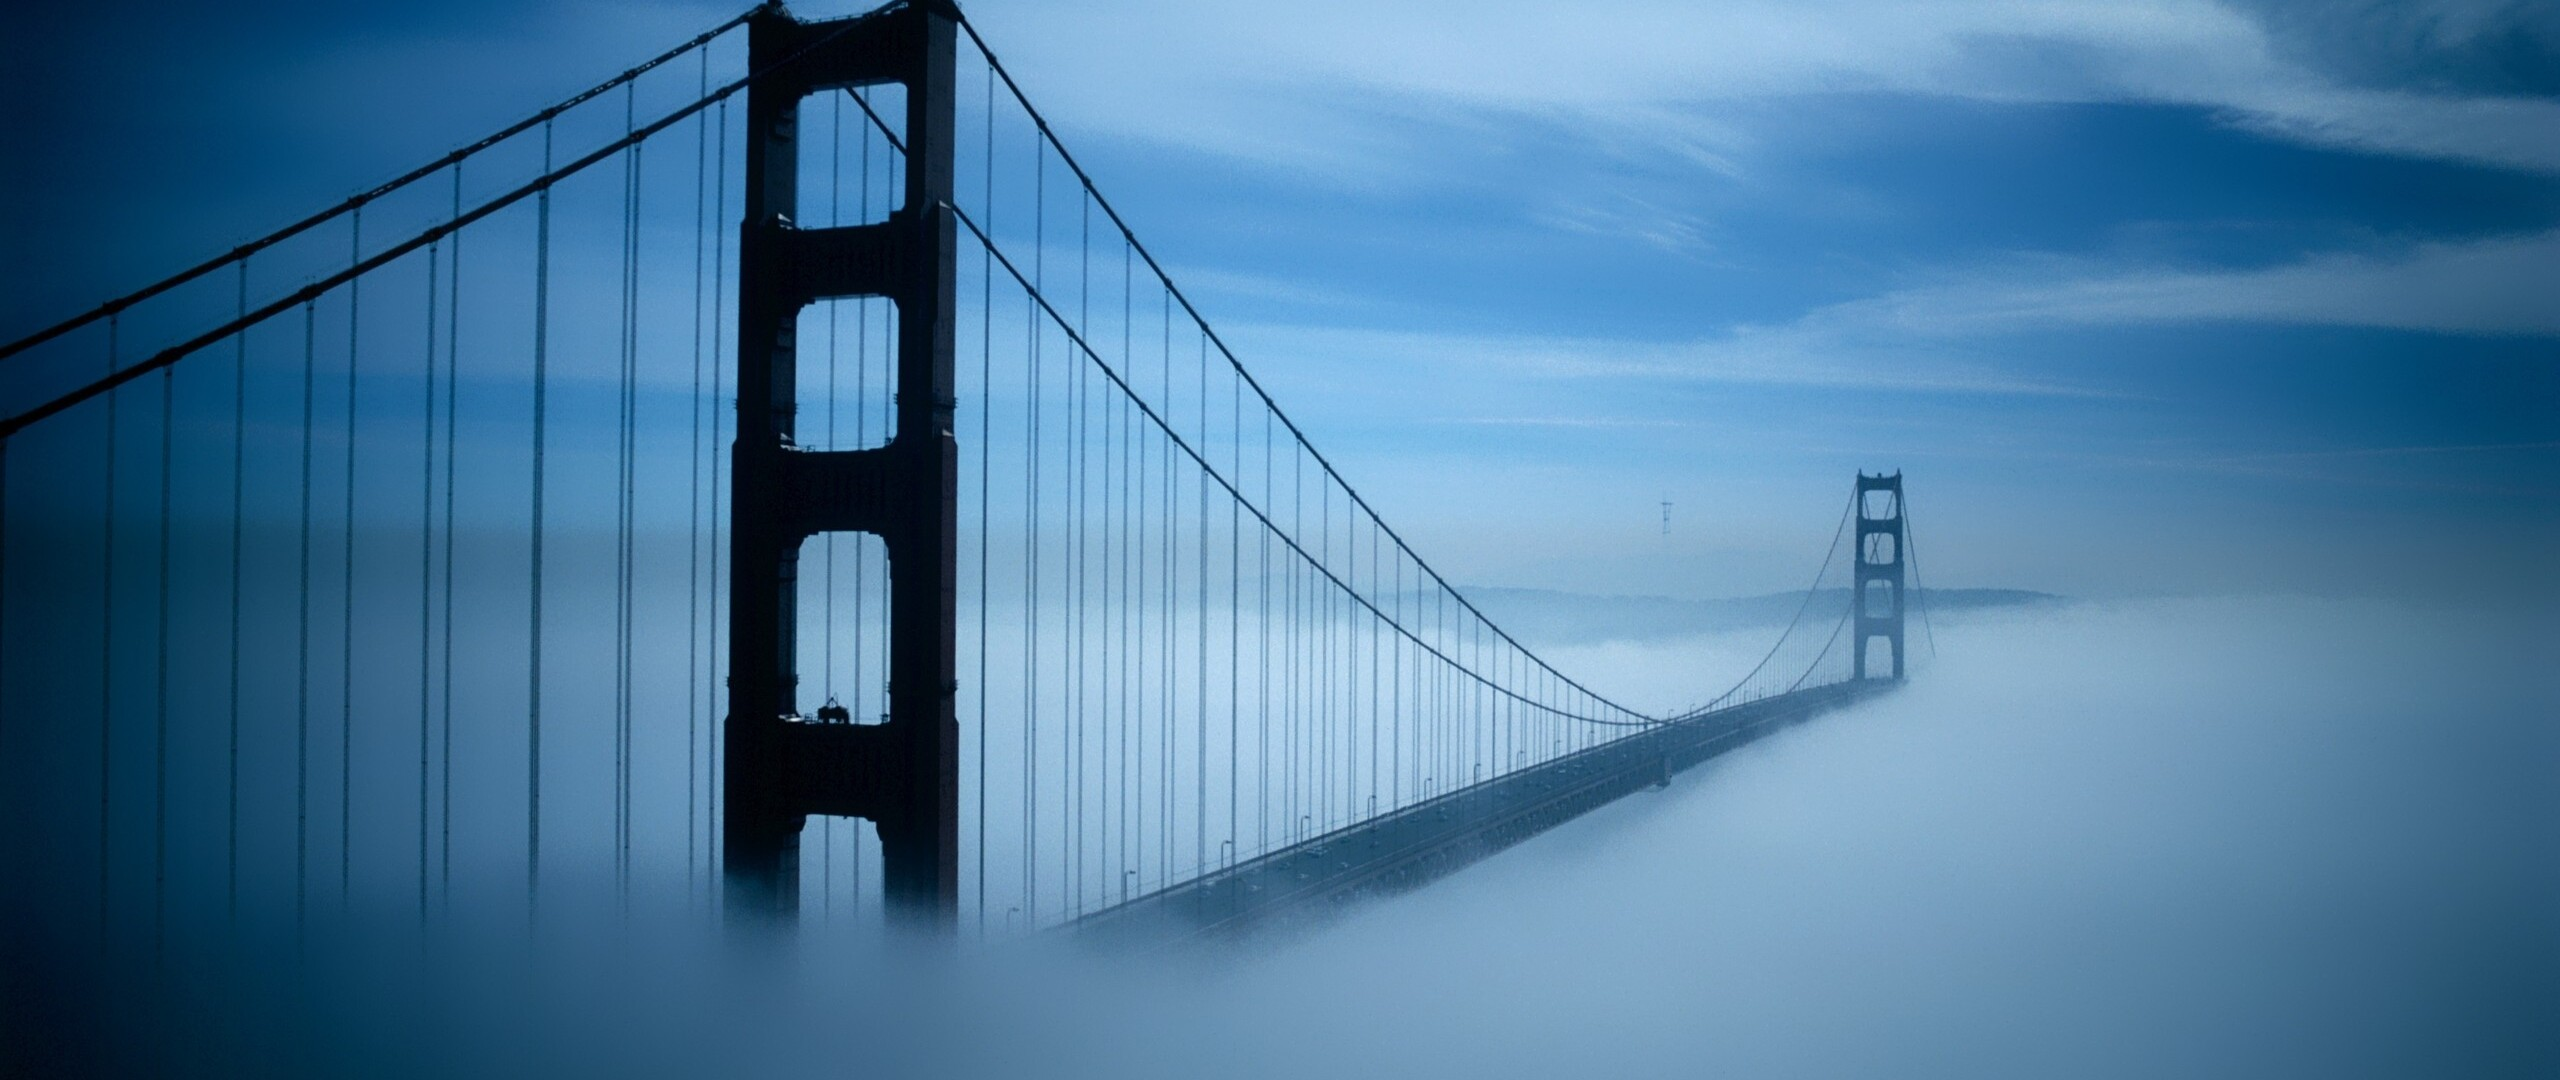 2560x1080 Golden Gate Bridge San Francisco 2560x1080 Resolution Hd 4k Wallpapers Images Backgrounds Photos And Pictures